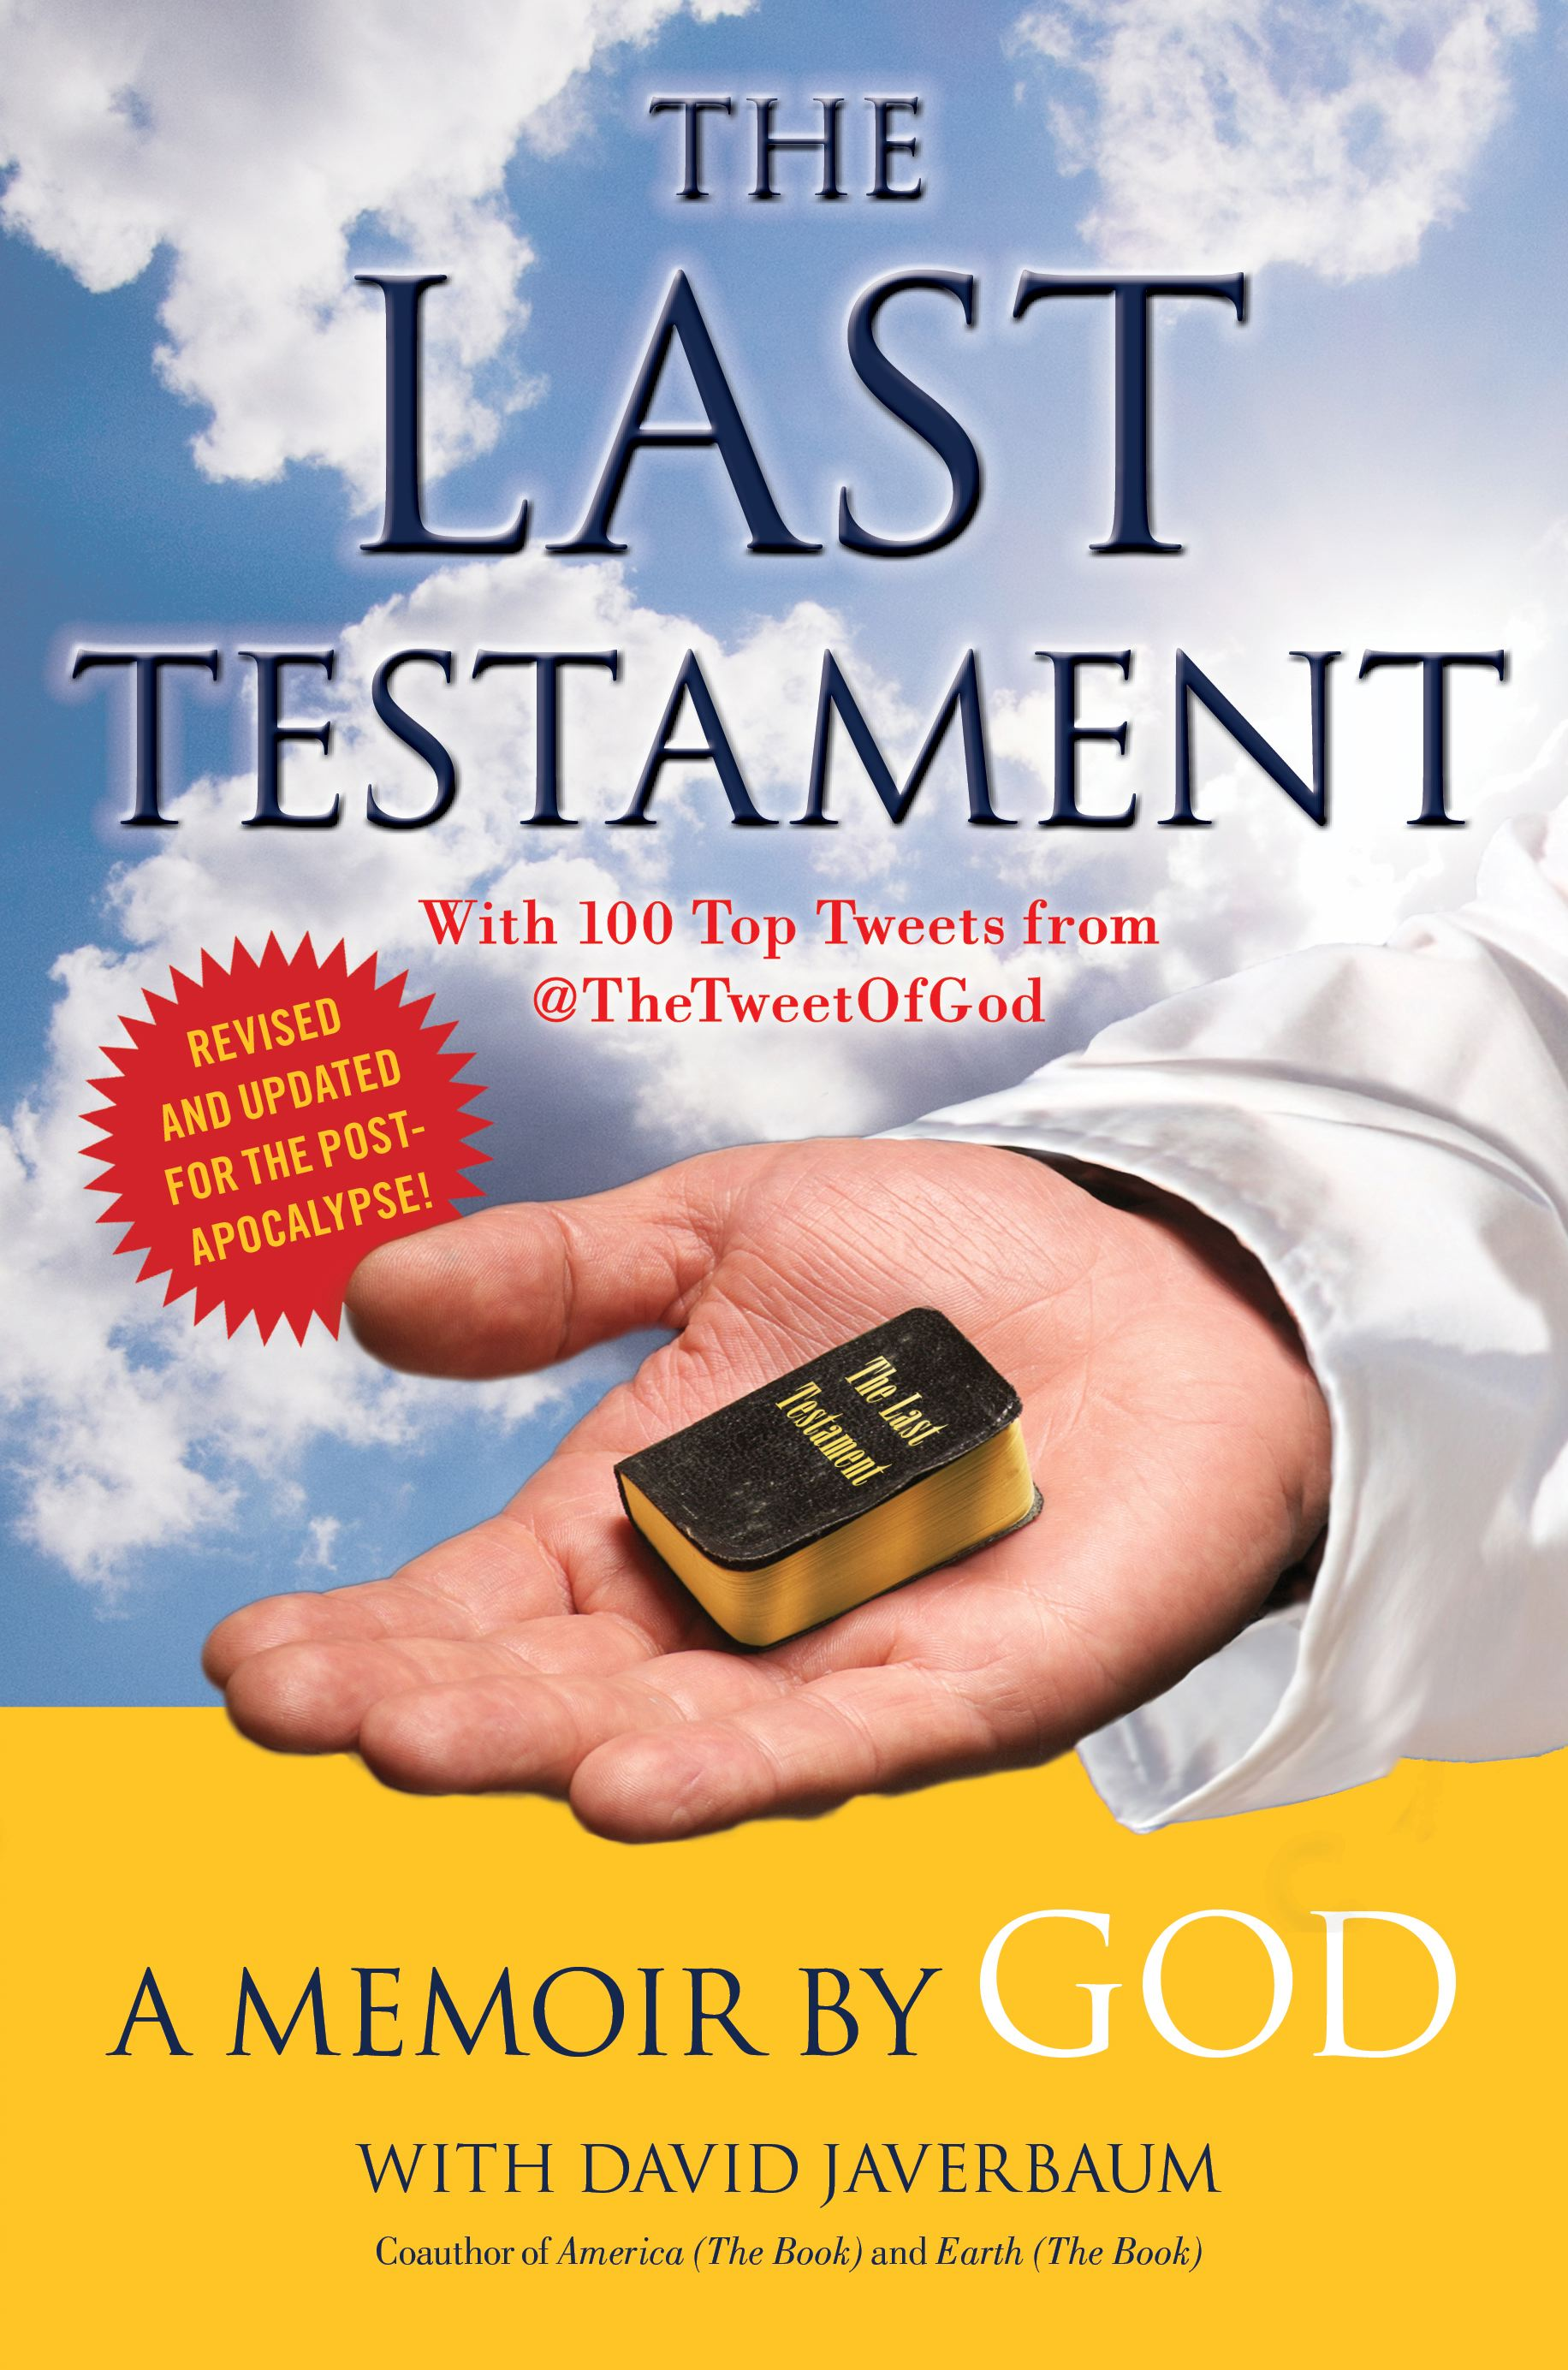 The-last-testament-9781451640199_hr